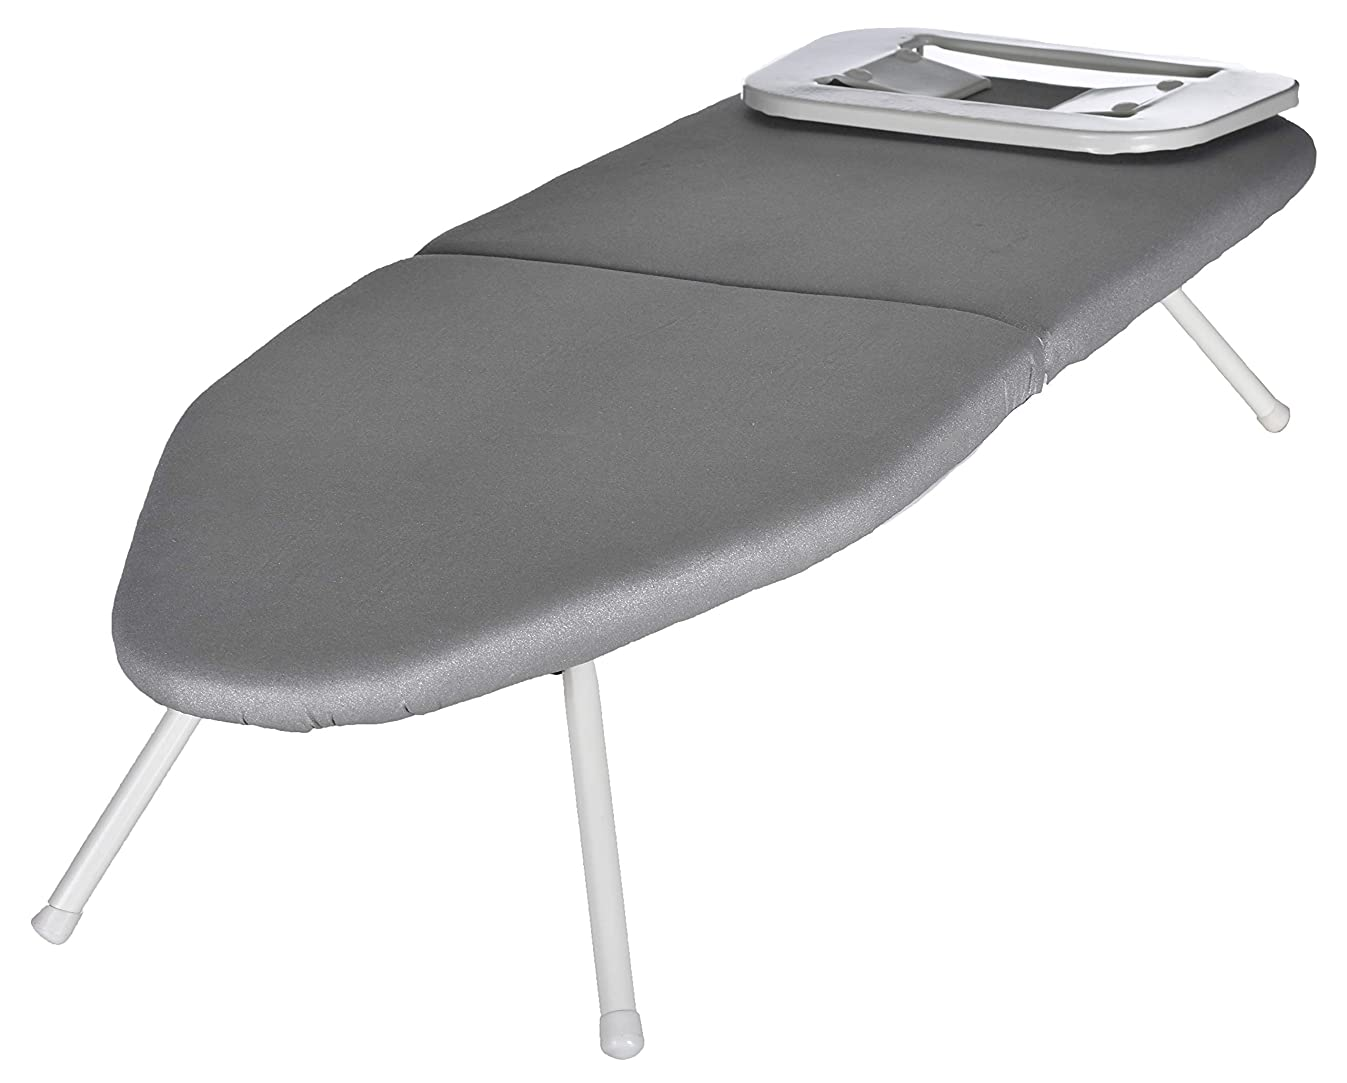 Tabletop Ironing Board - Compact, Collapsible Folding Legs, Metal Iron Rest to Prevent Scorching, Carrying Bag for Travel and Storage. Convenient for College Dorm, Studio Apartments and Traveling.